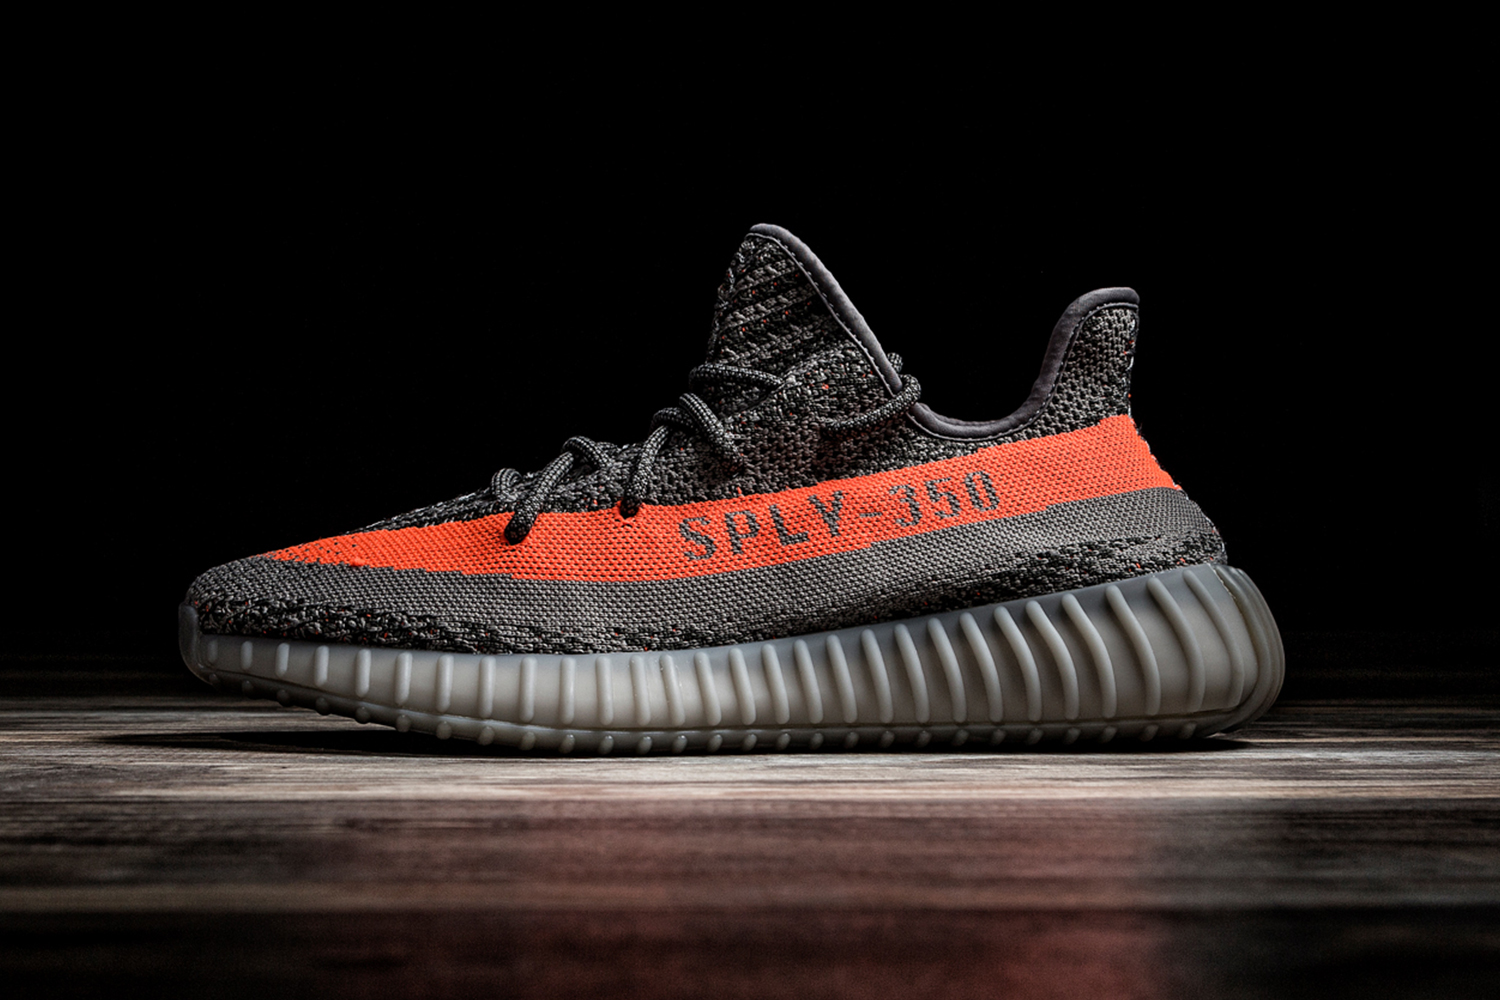 Yeezy Boost 350 v2 Zebra: PEOPLE ARE PAYING HOW MUCH